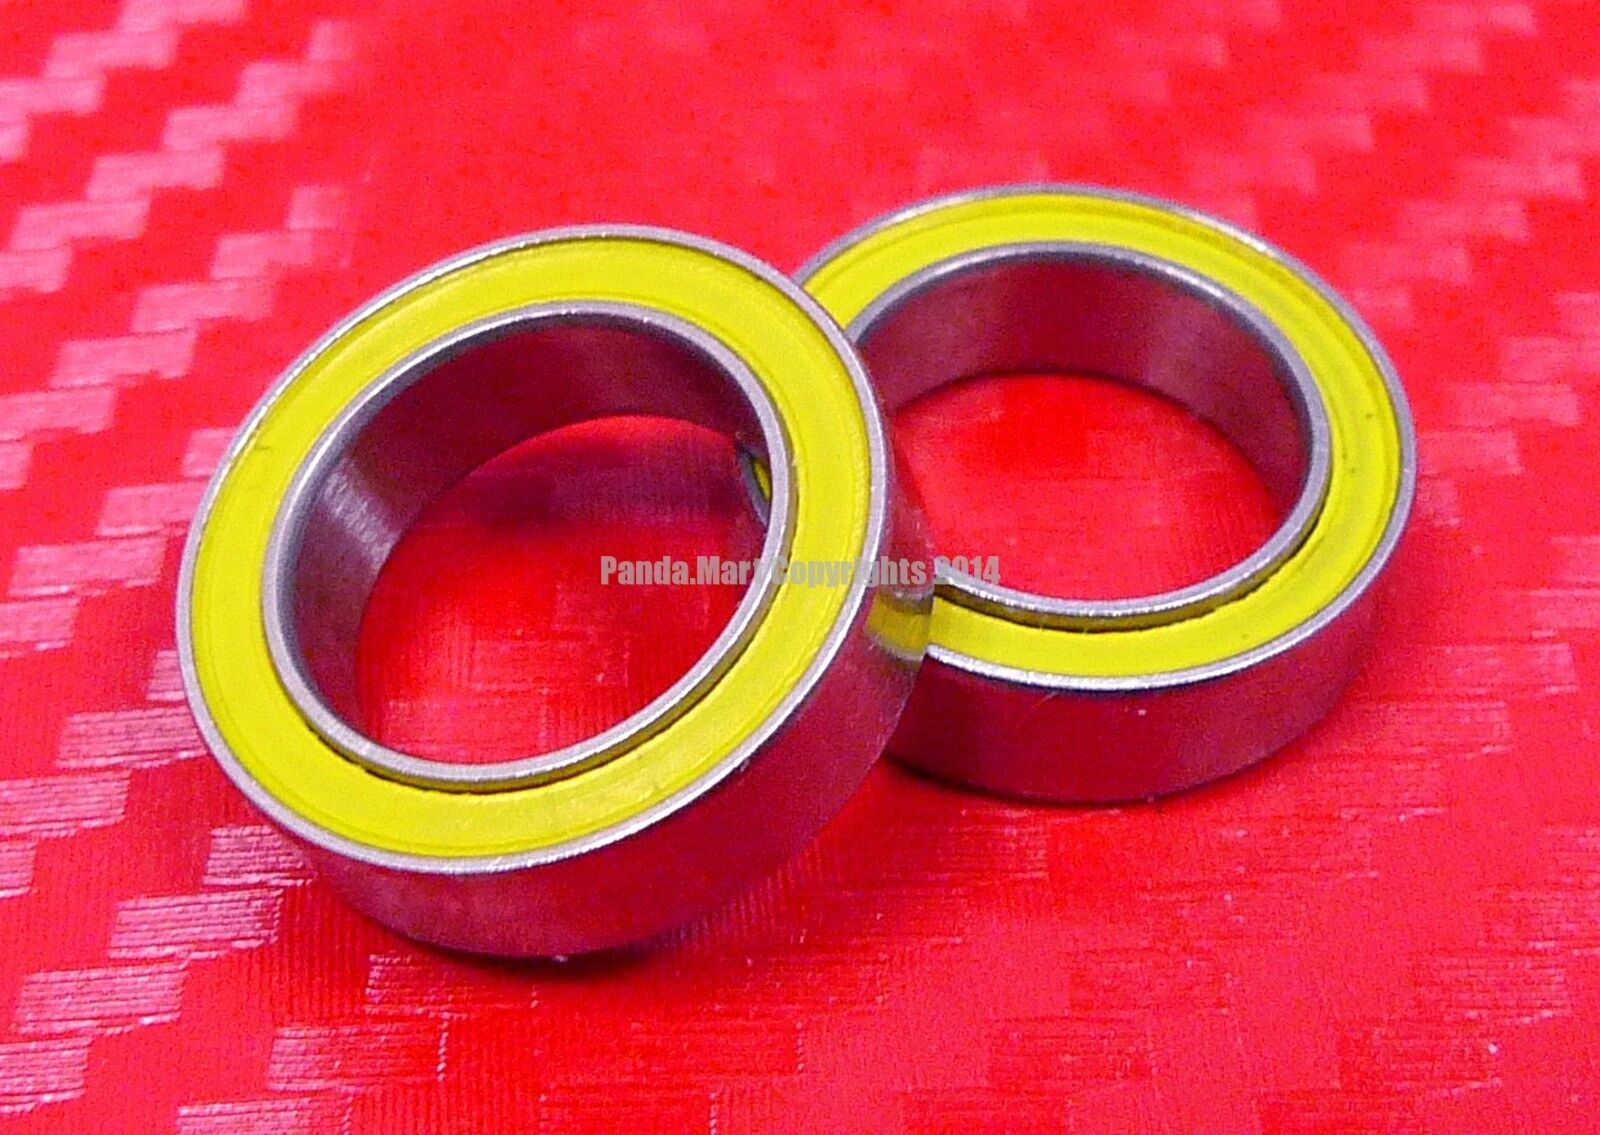 [QTY 10] S6805C-2OS ABEC-5 HYBRID CERAMIC Yellow Ball Bearings 25x37x7 25377